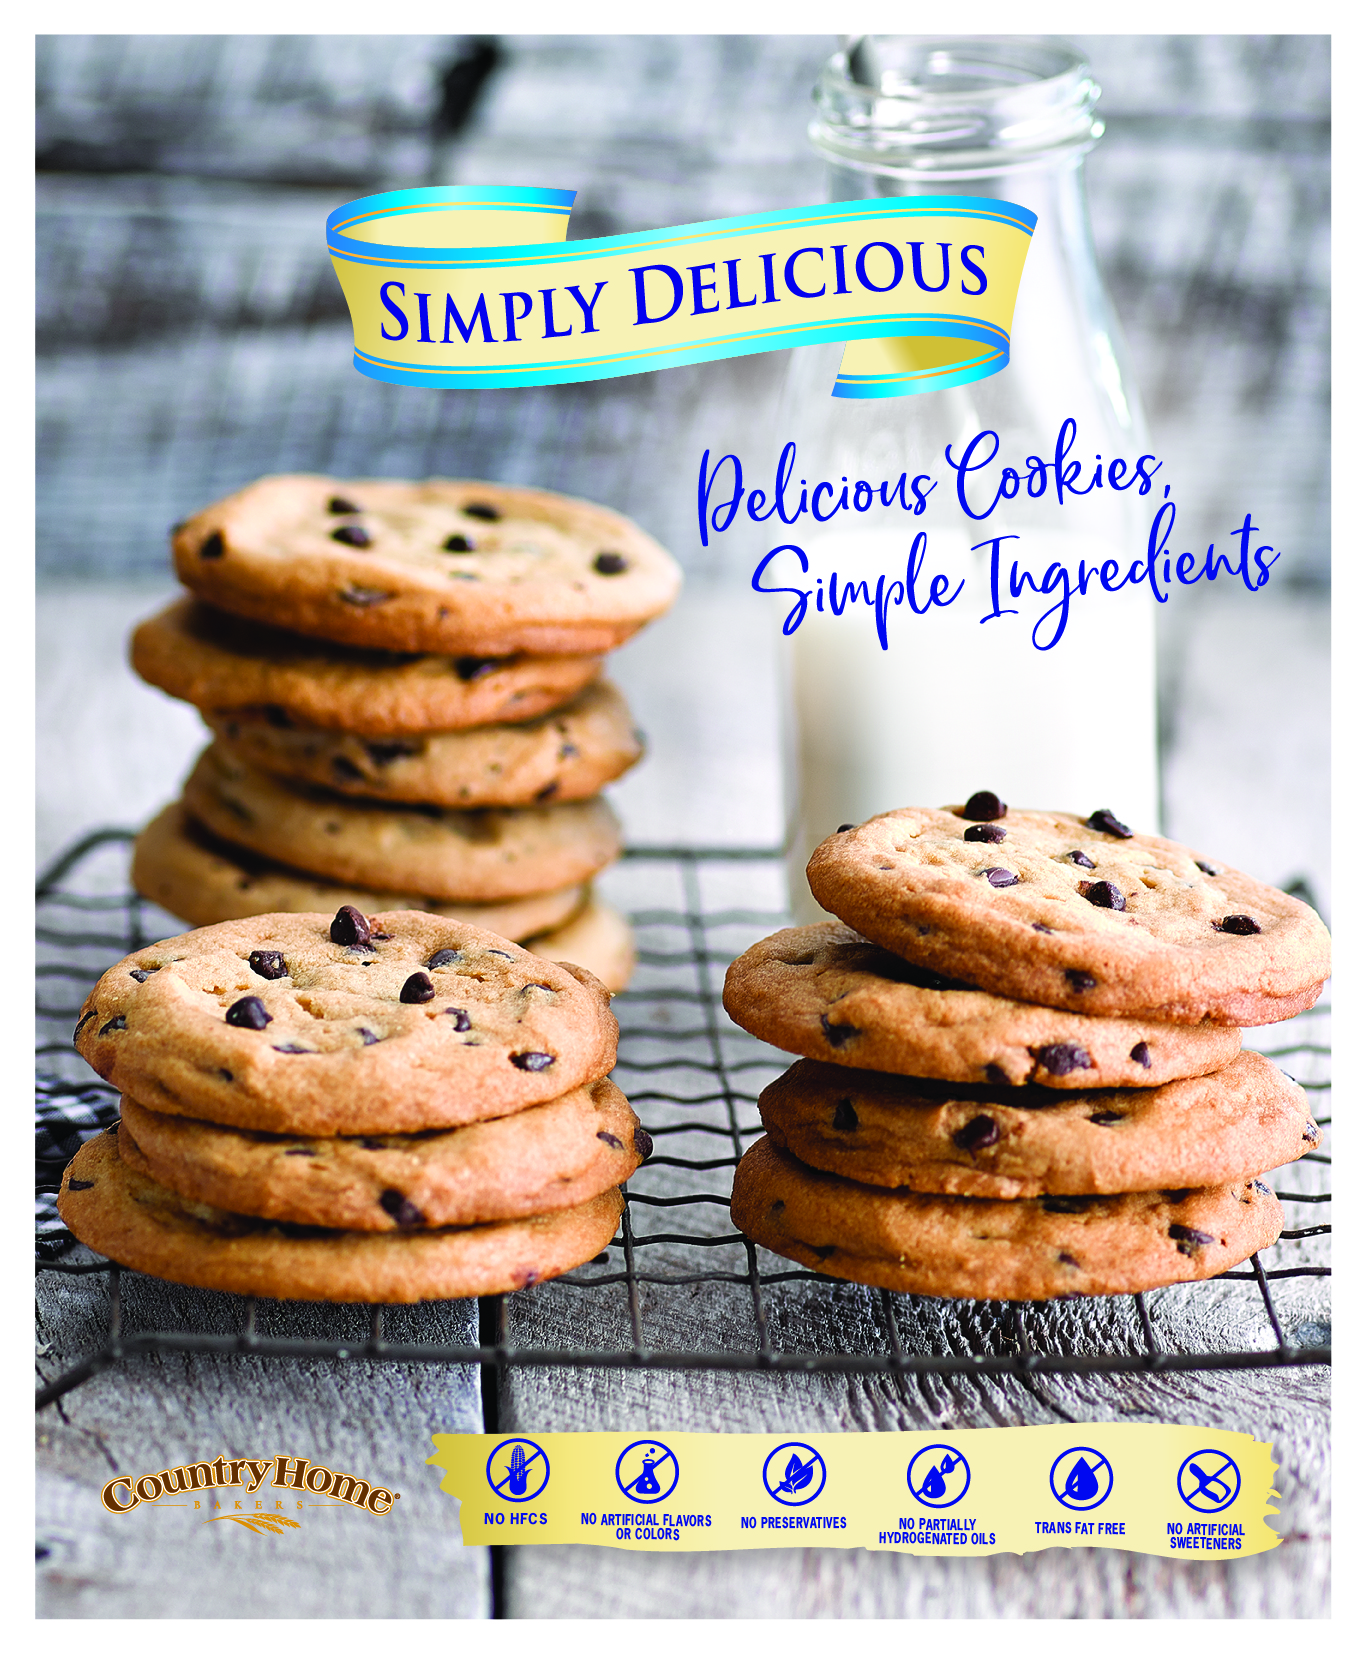 Simply Delicious Cookie Poster